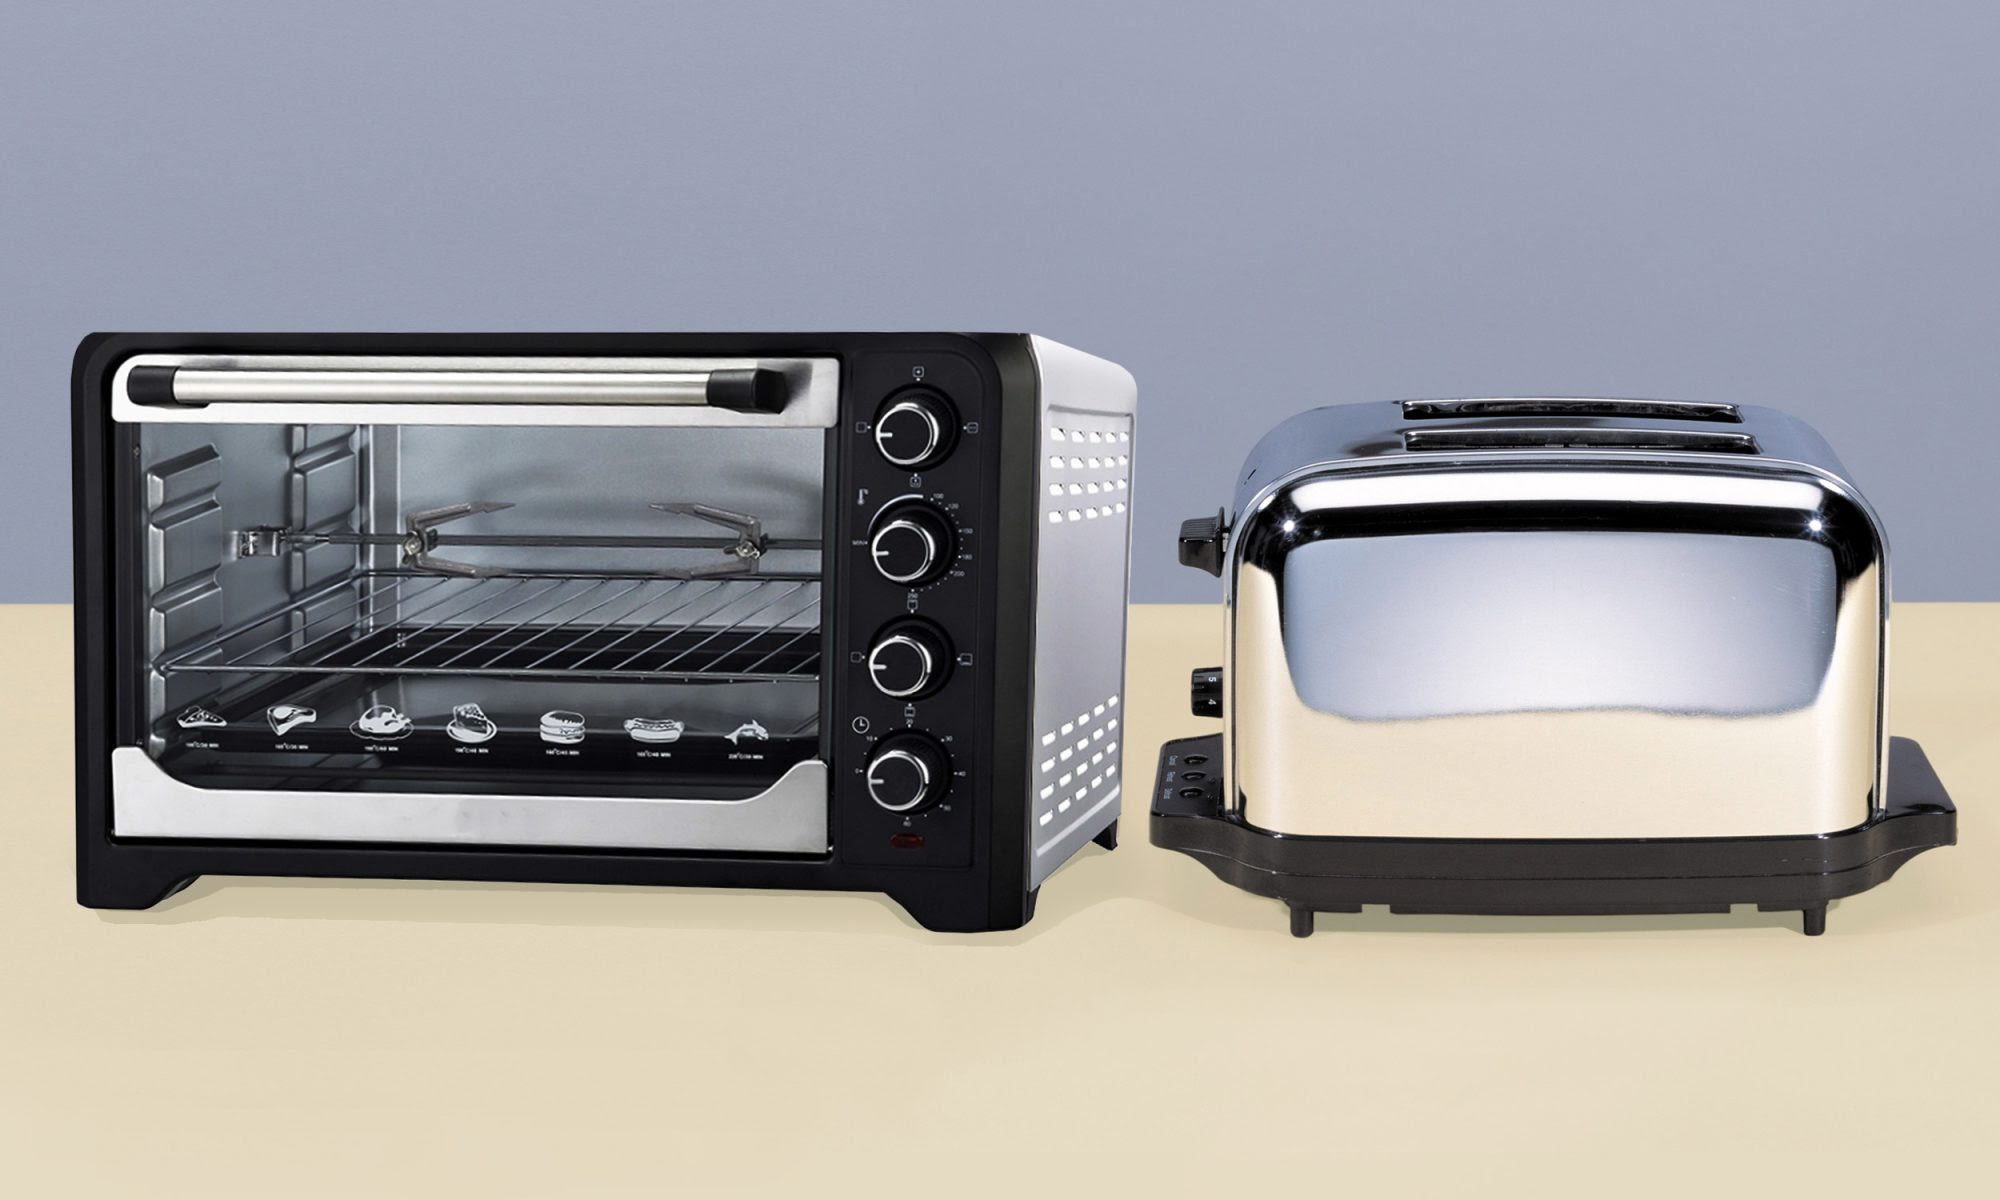 Best Place To Buy A Toaster Oven All About Image Hd